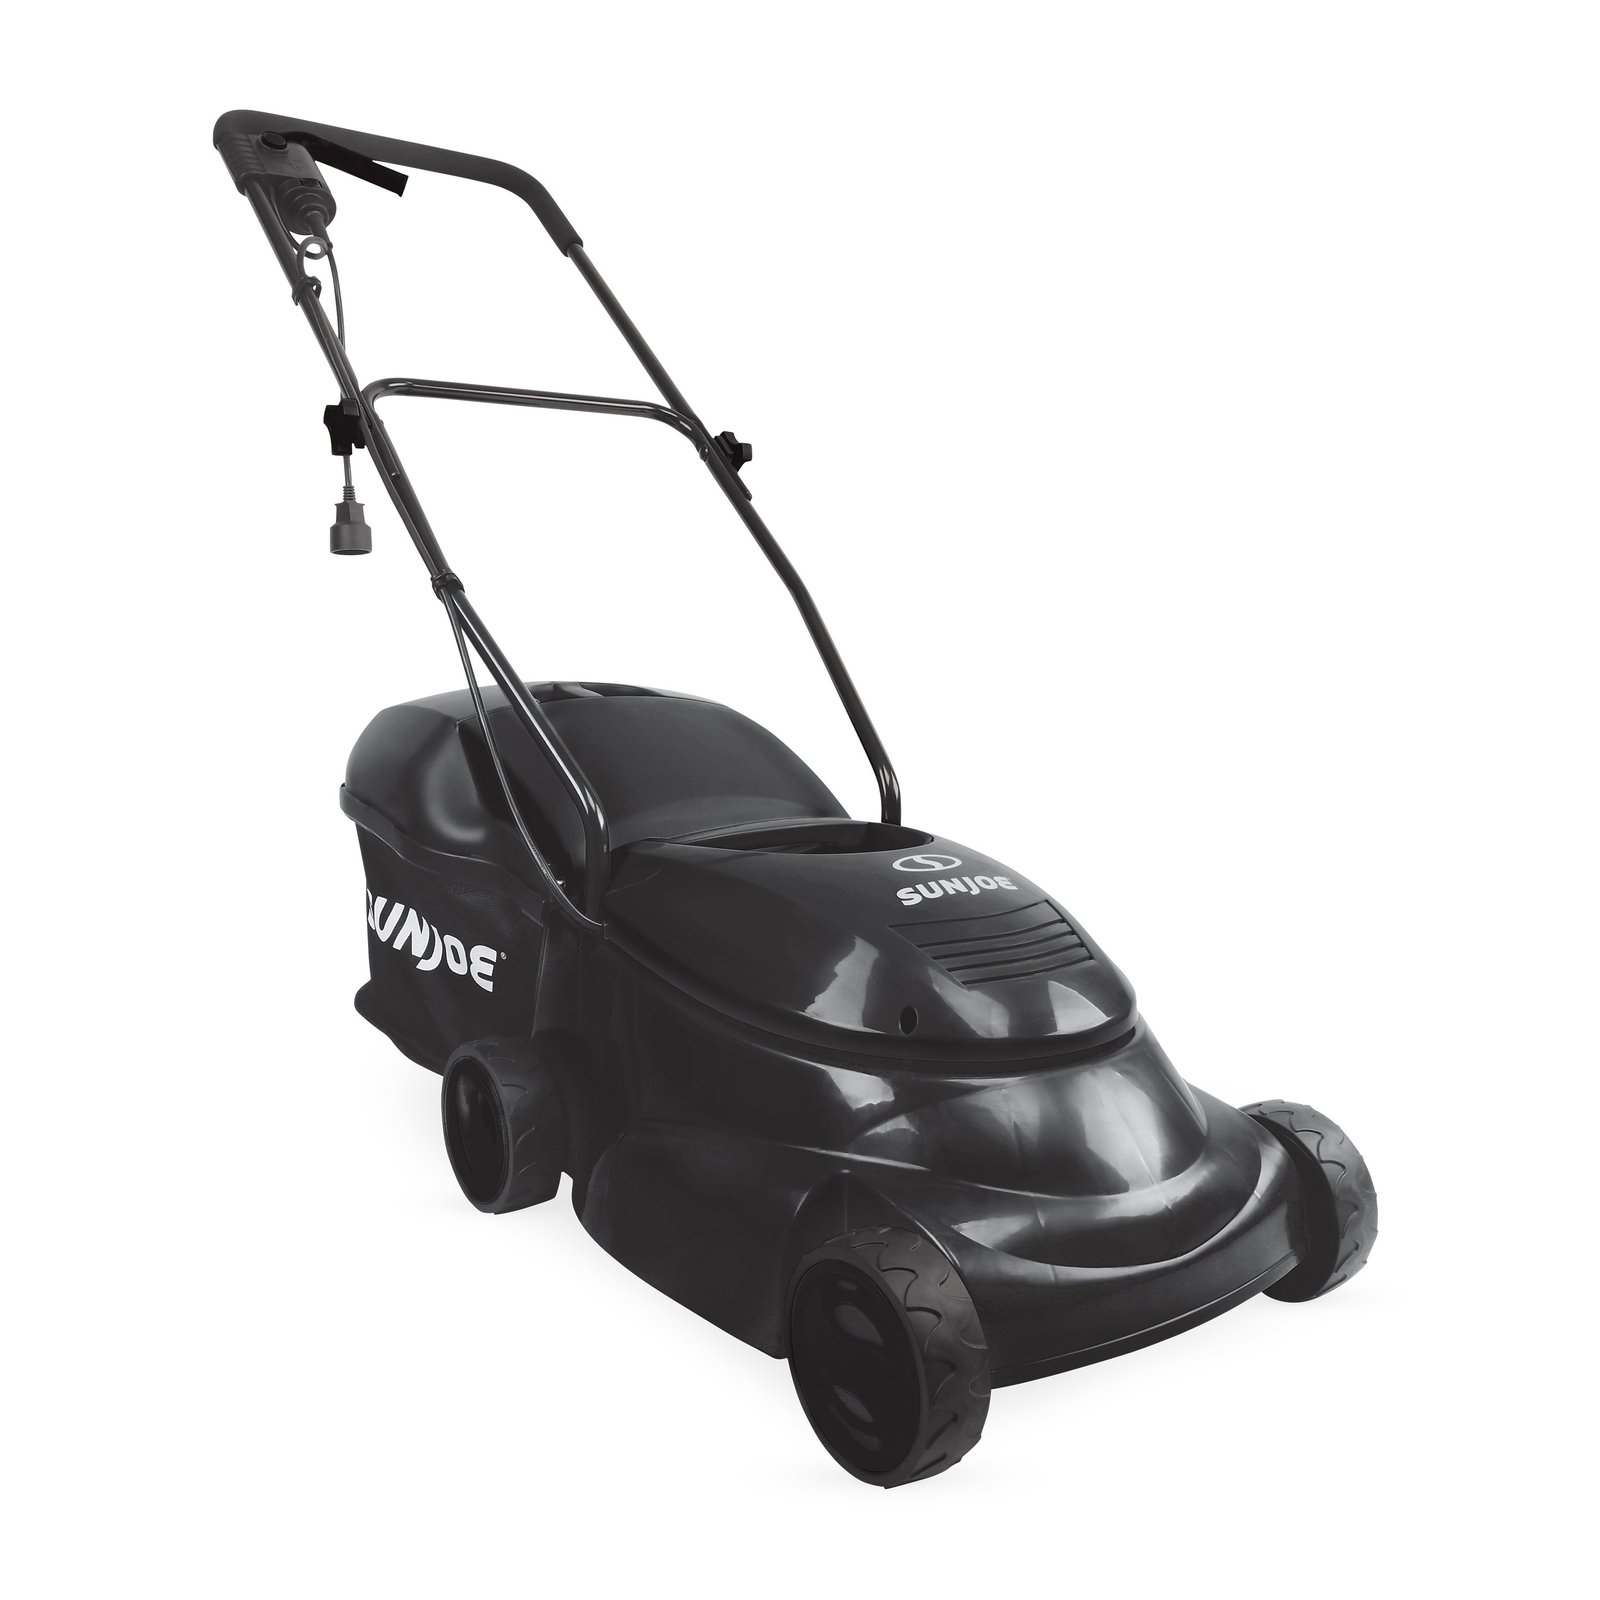 Sun Joe MJ401E Electric Lawn Mower 14 inch